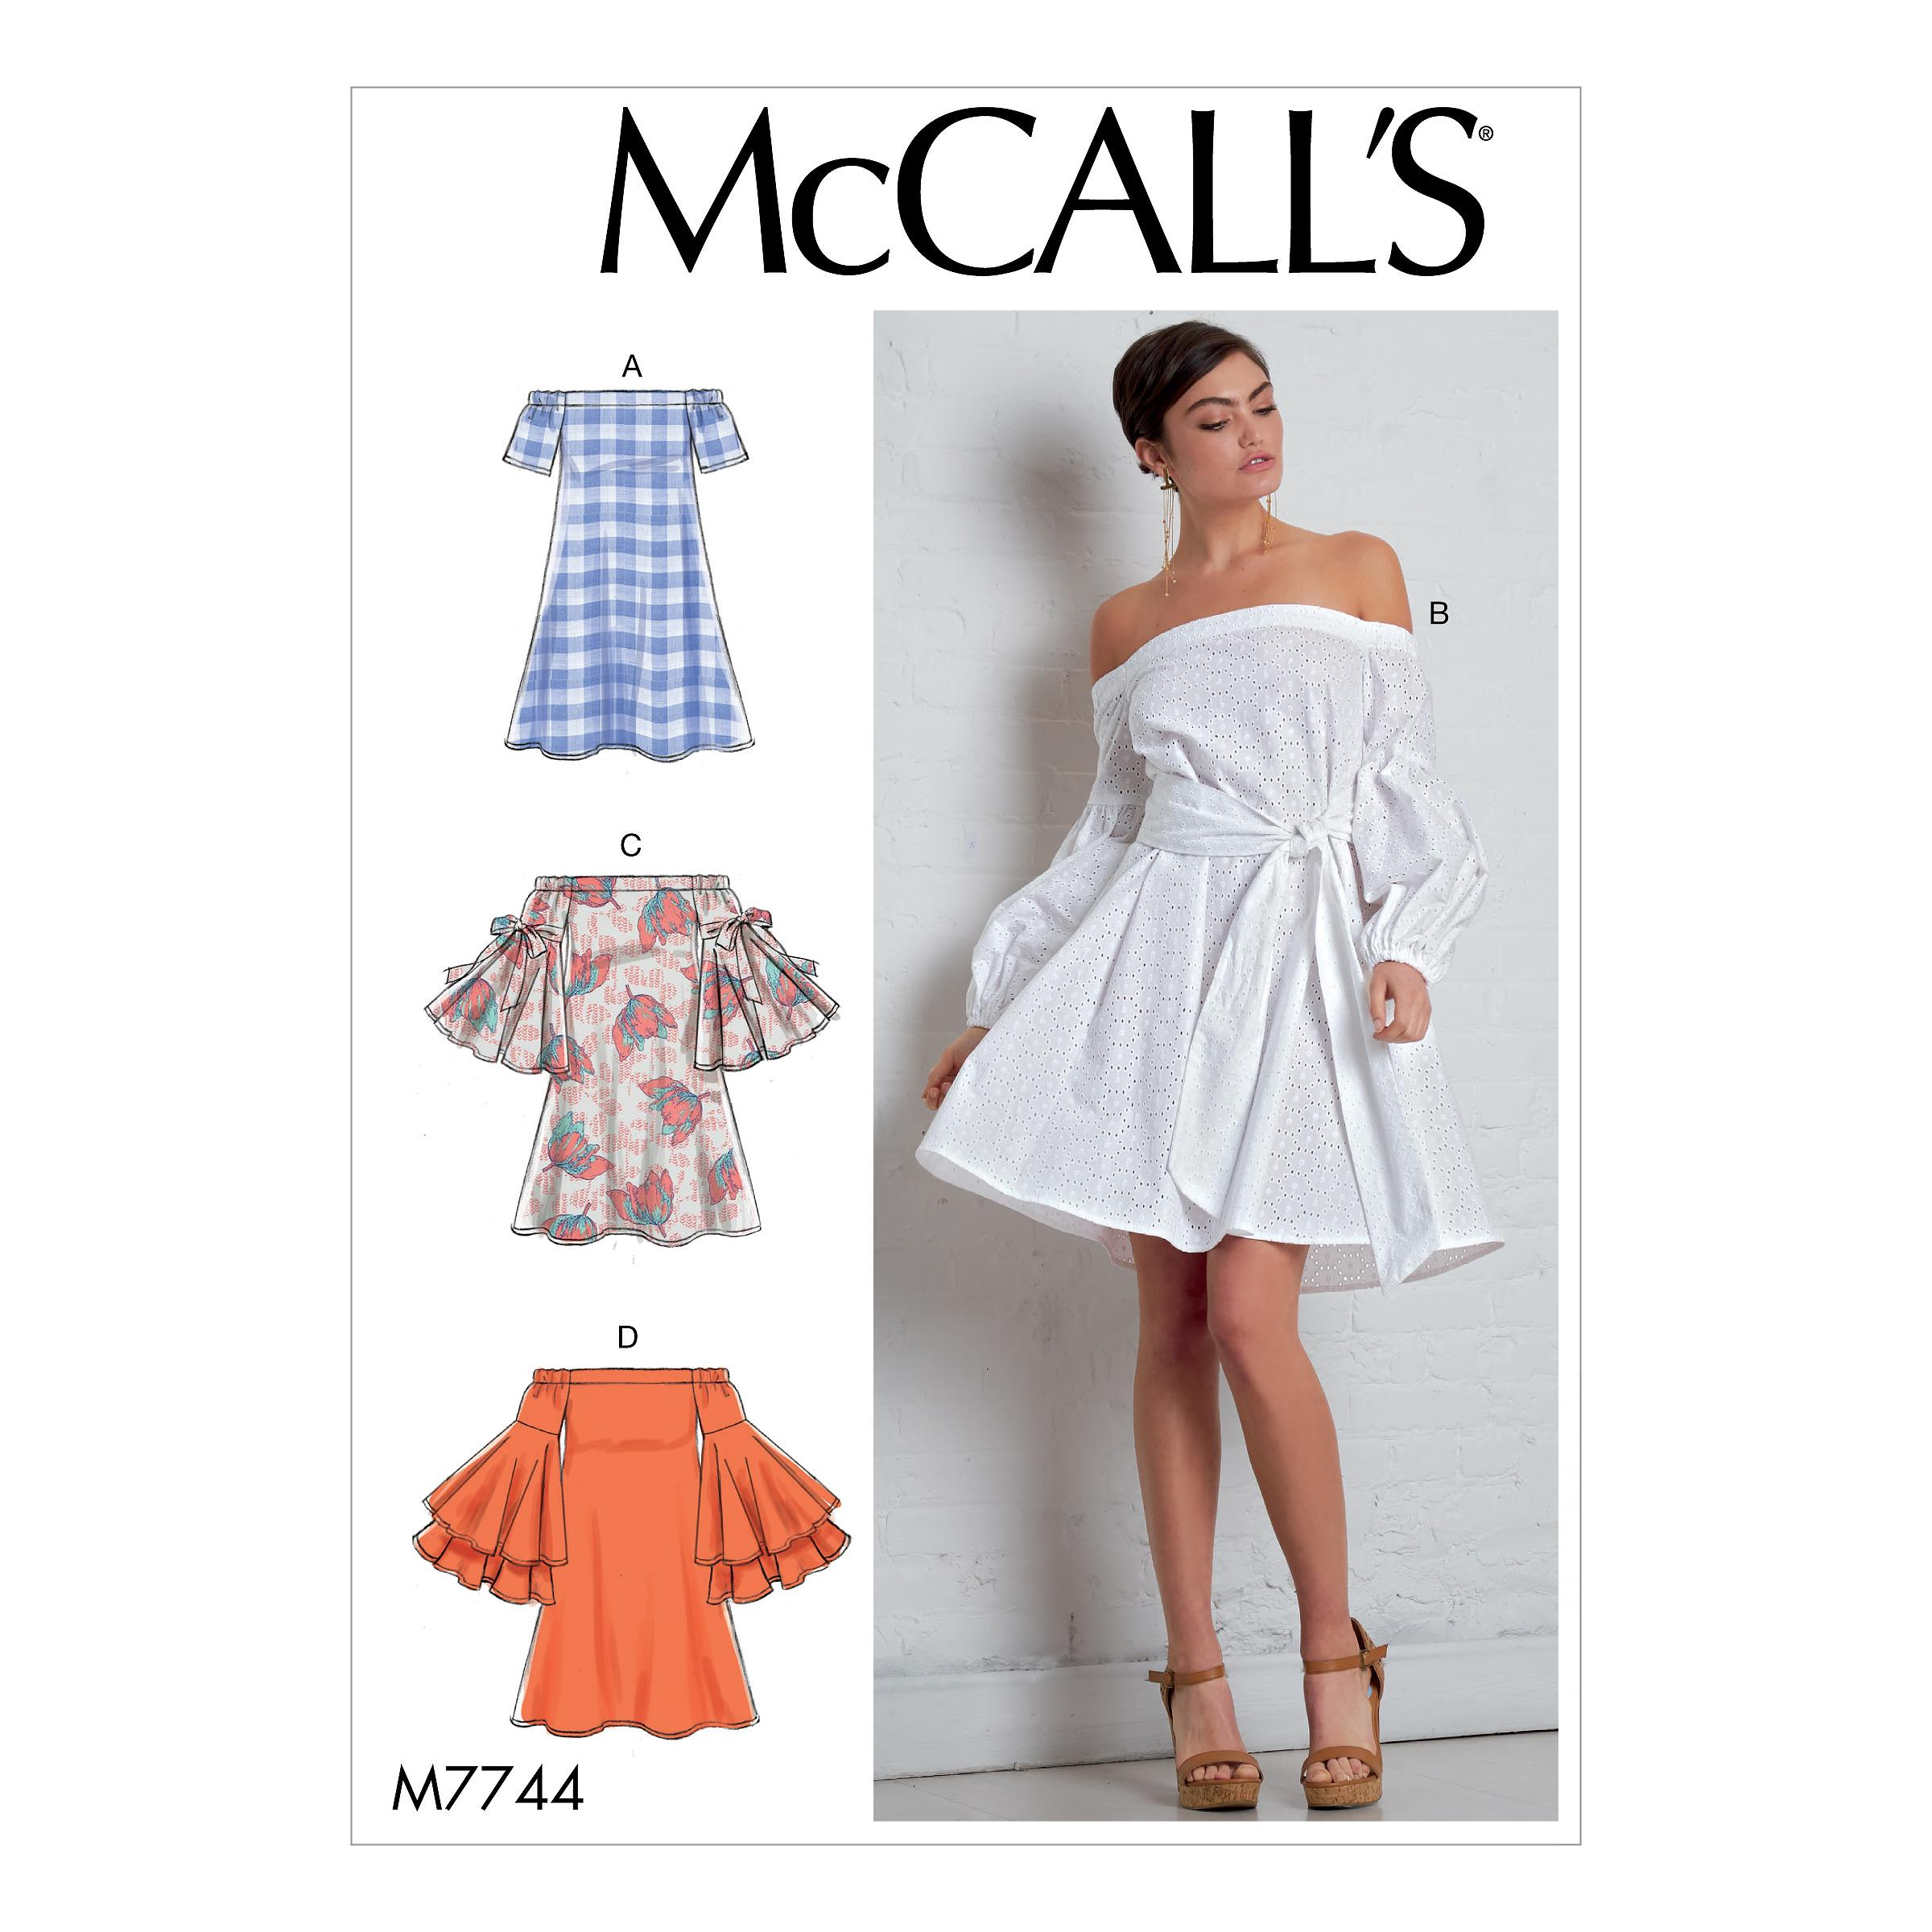 McCalls M7744 Misses Dresses, Misses Prom, Evening & Bridal